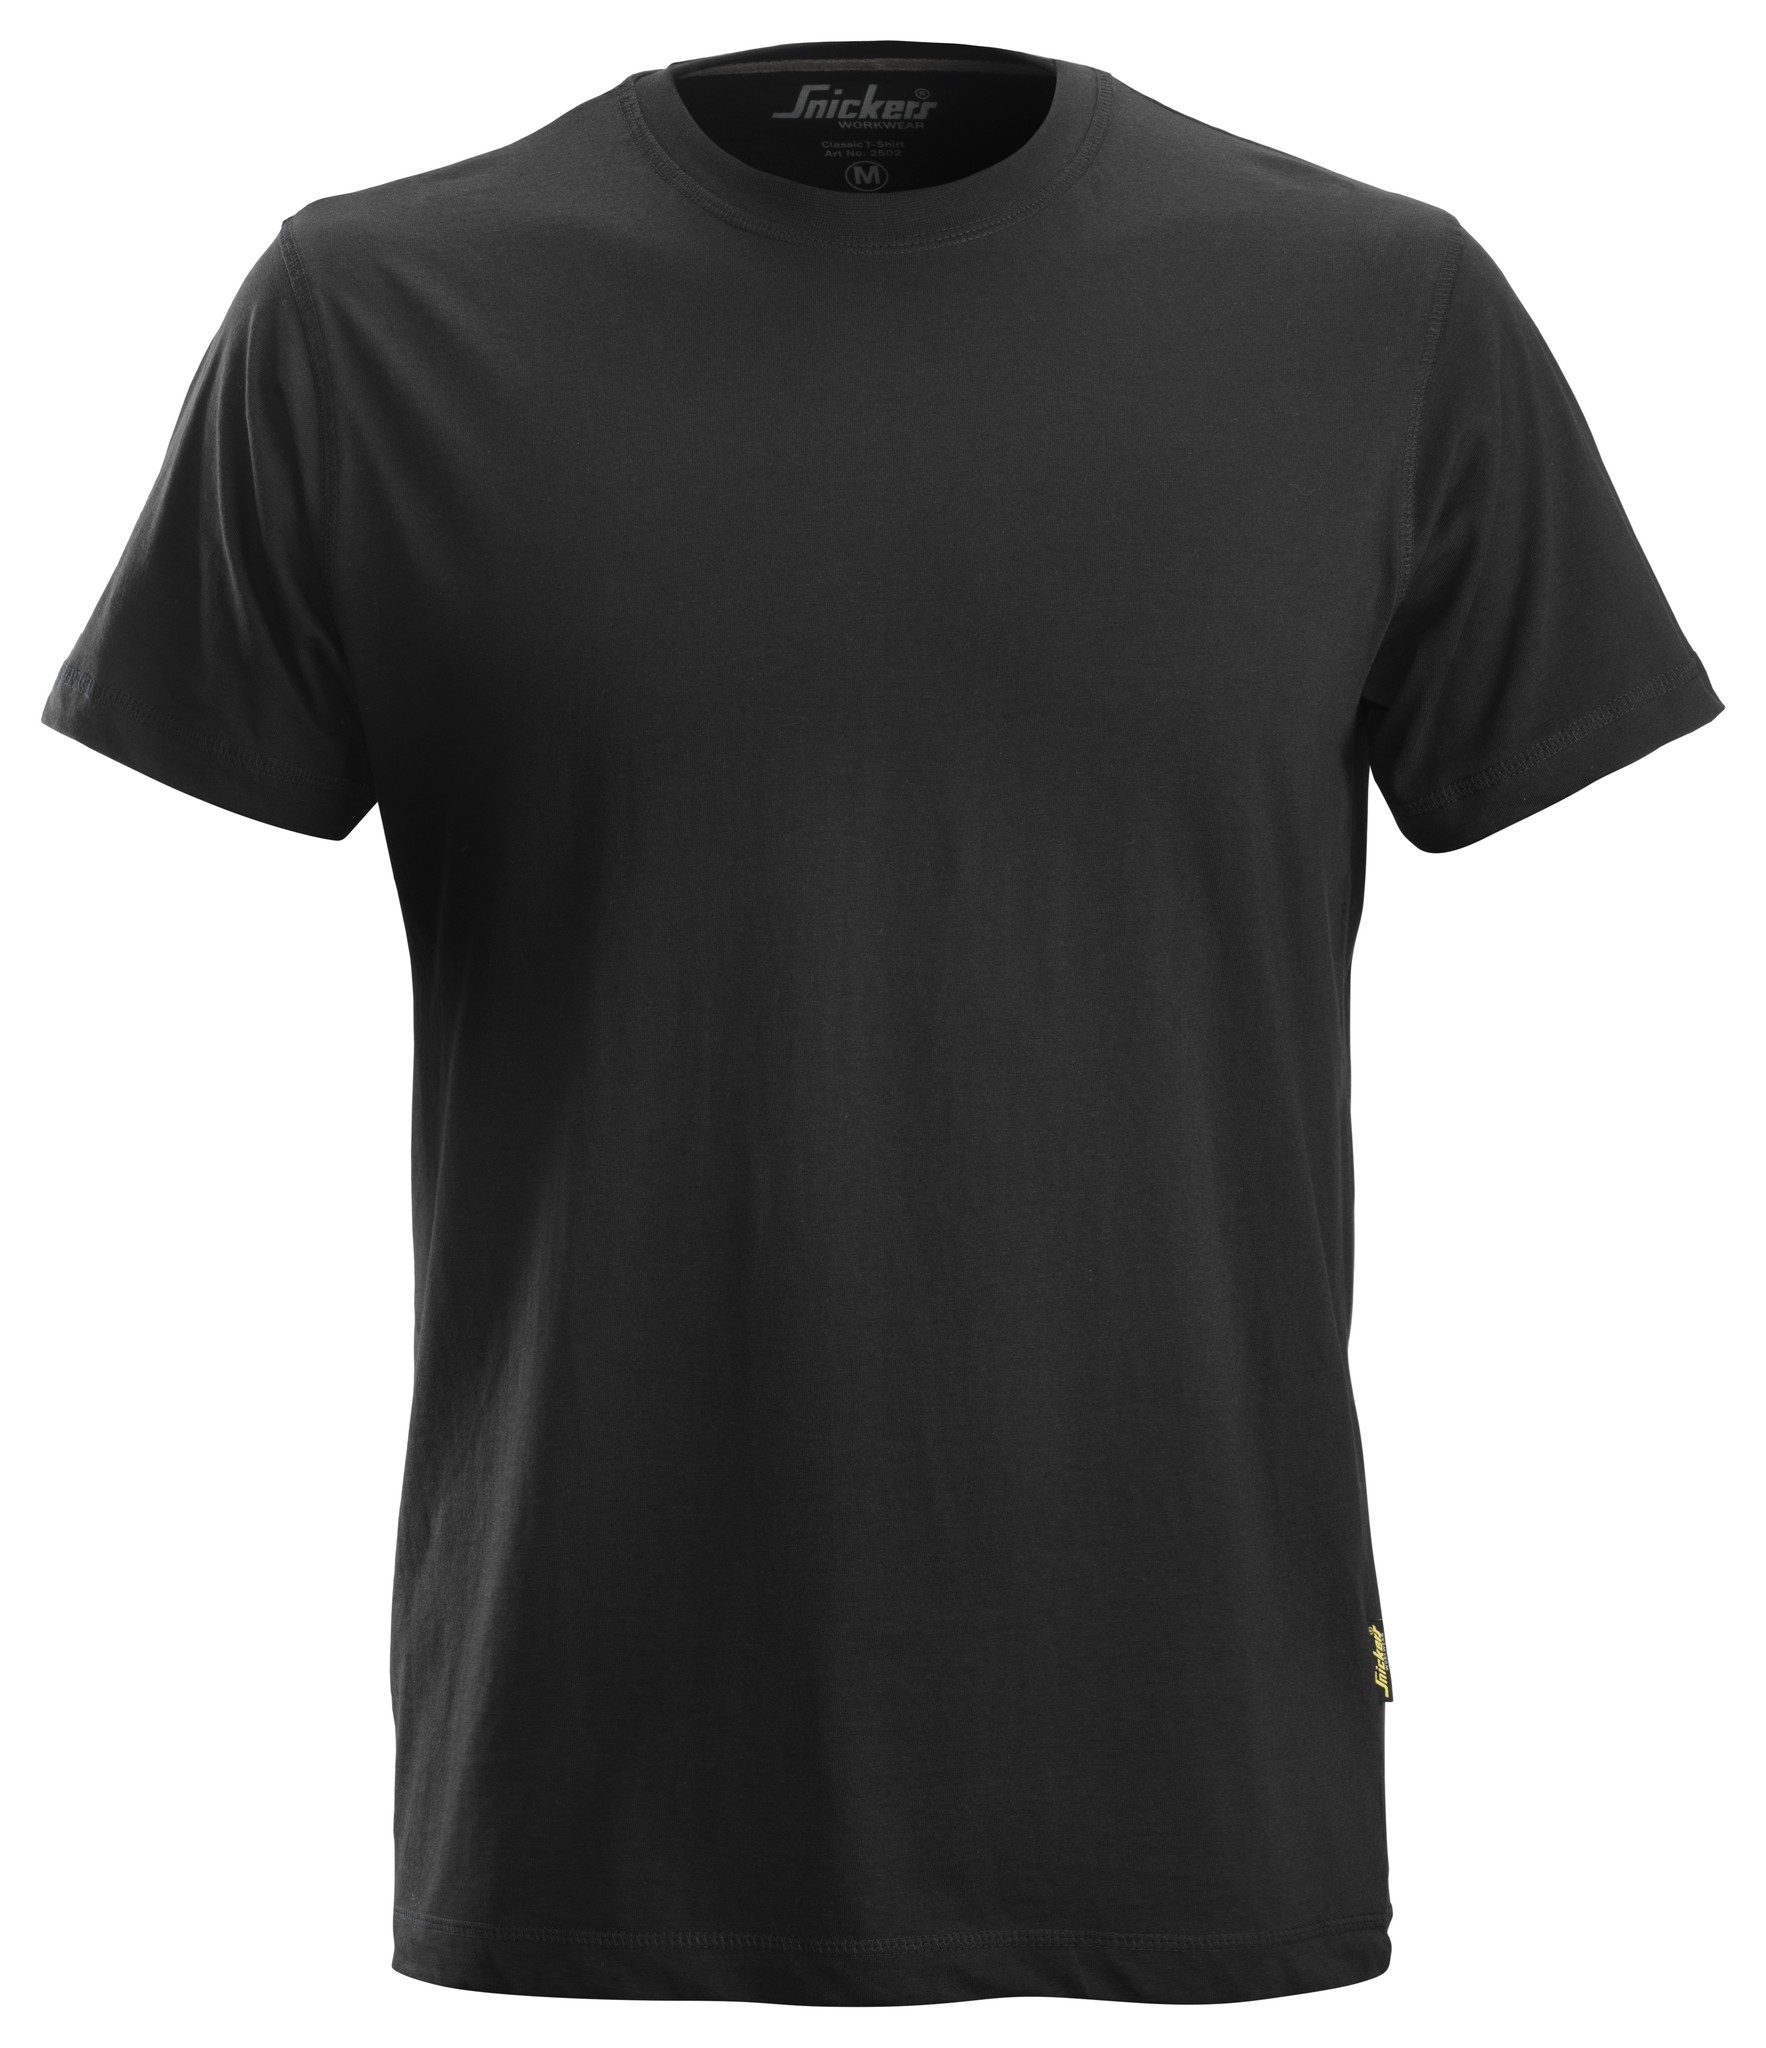 Snickers Workwear 2502 Classic T-shirt